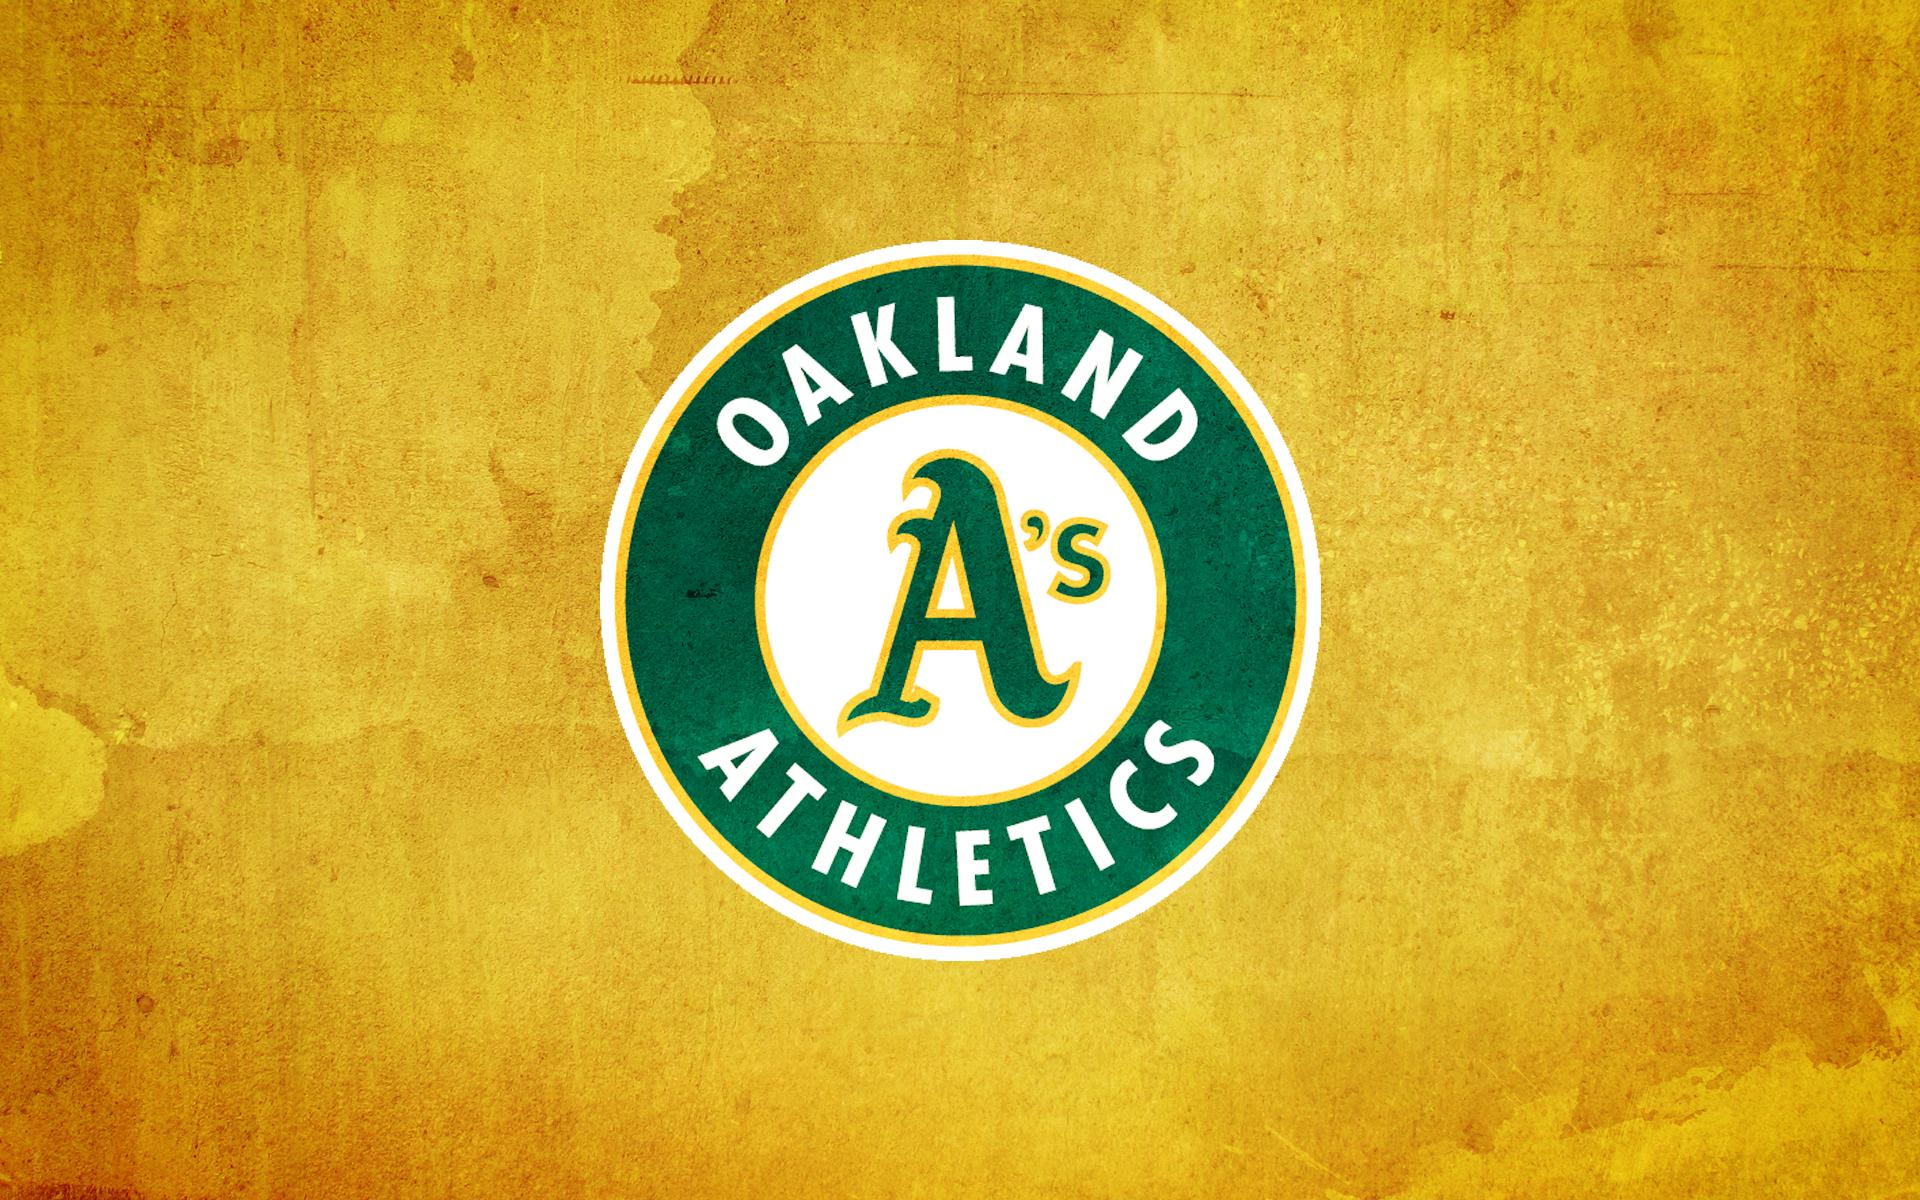 Oakland Athletics wallpaper 1920x1200 2834 1920x1200